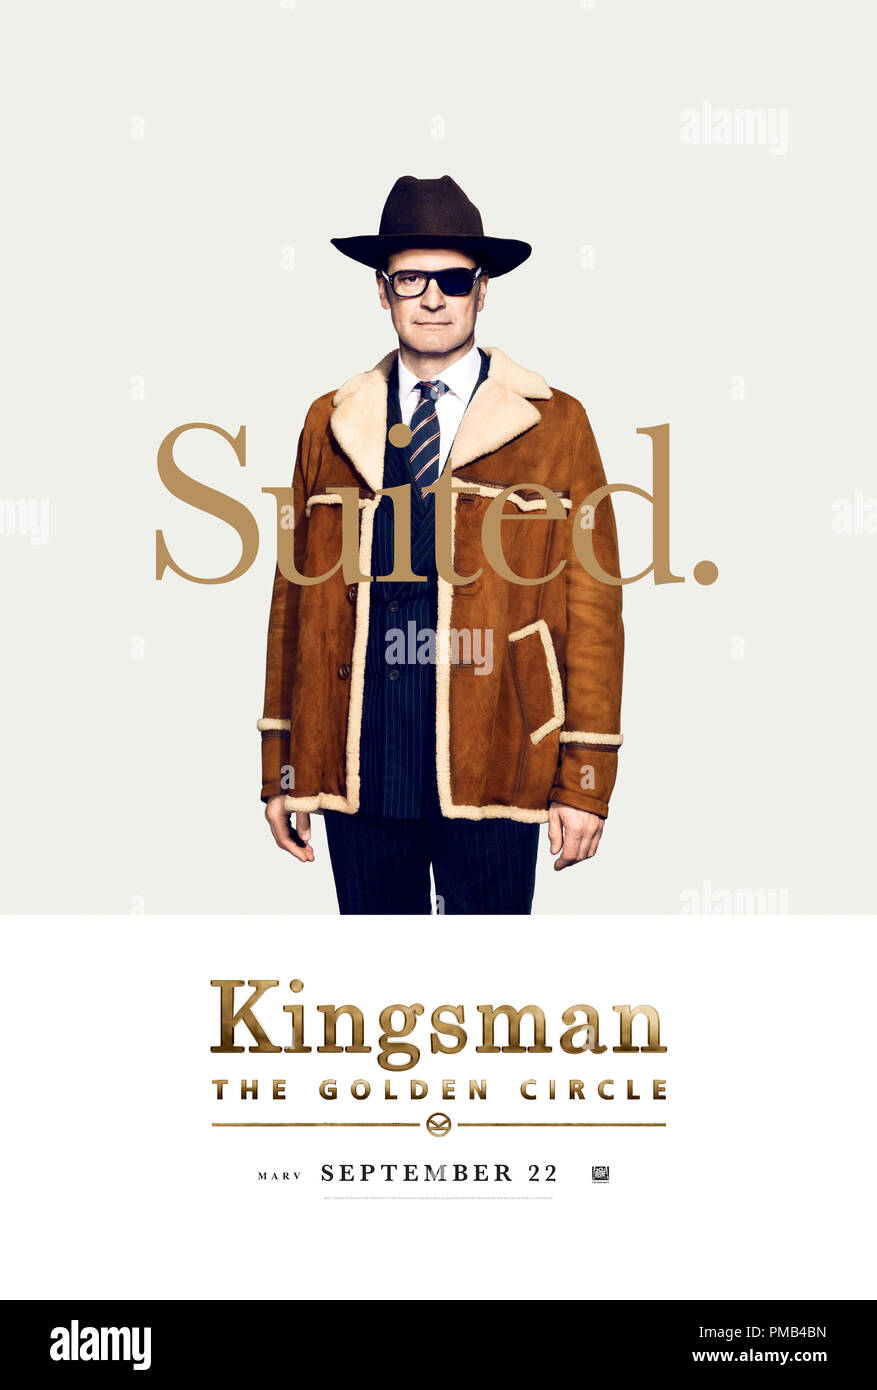 Kingsman The Golden Circle 2017 Twentieth Century Fox Film Corporation Poster Stock Photo Alamy